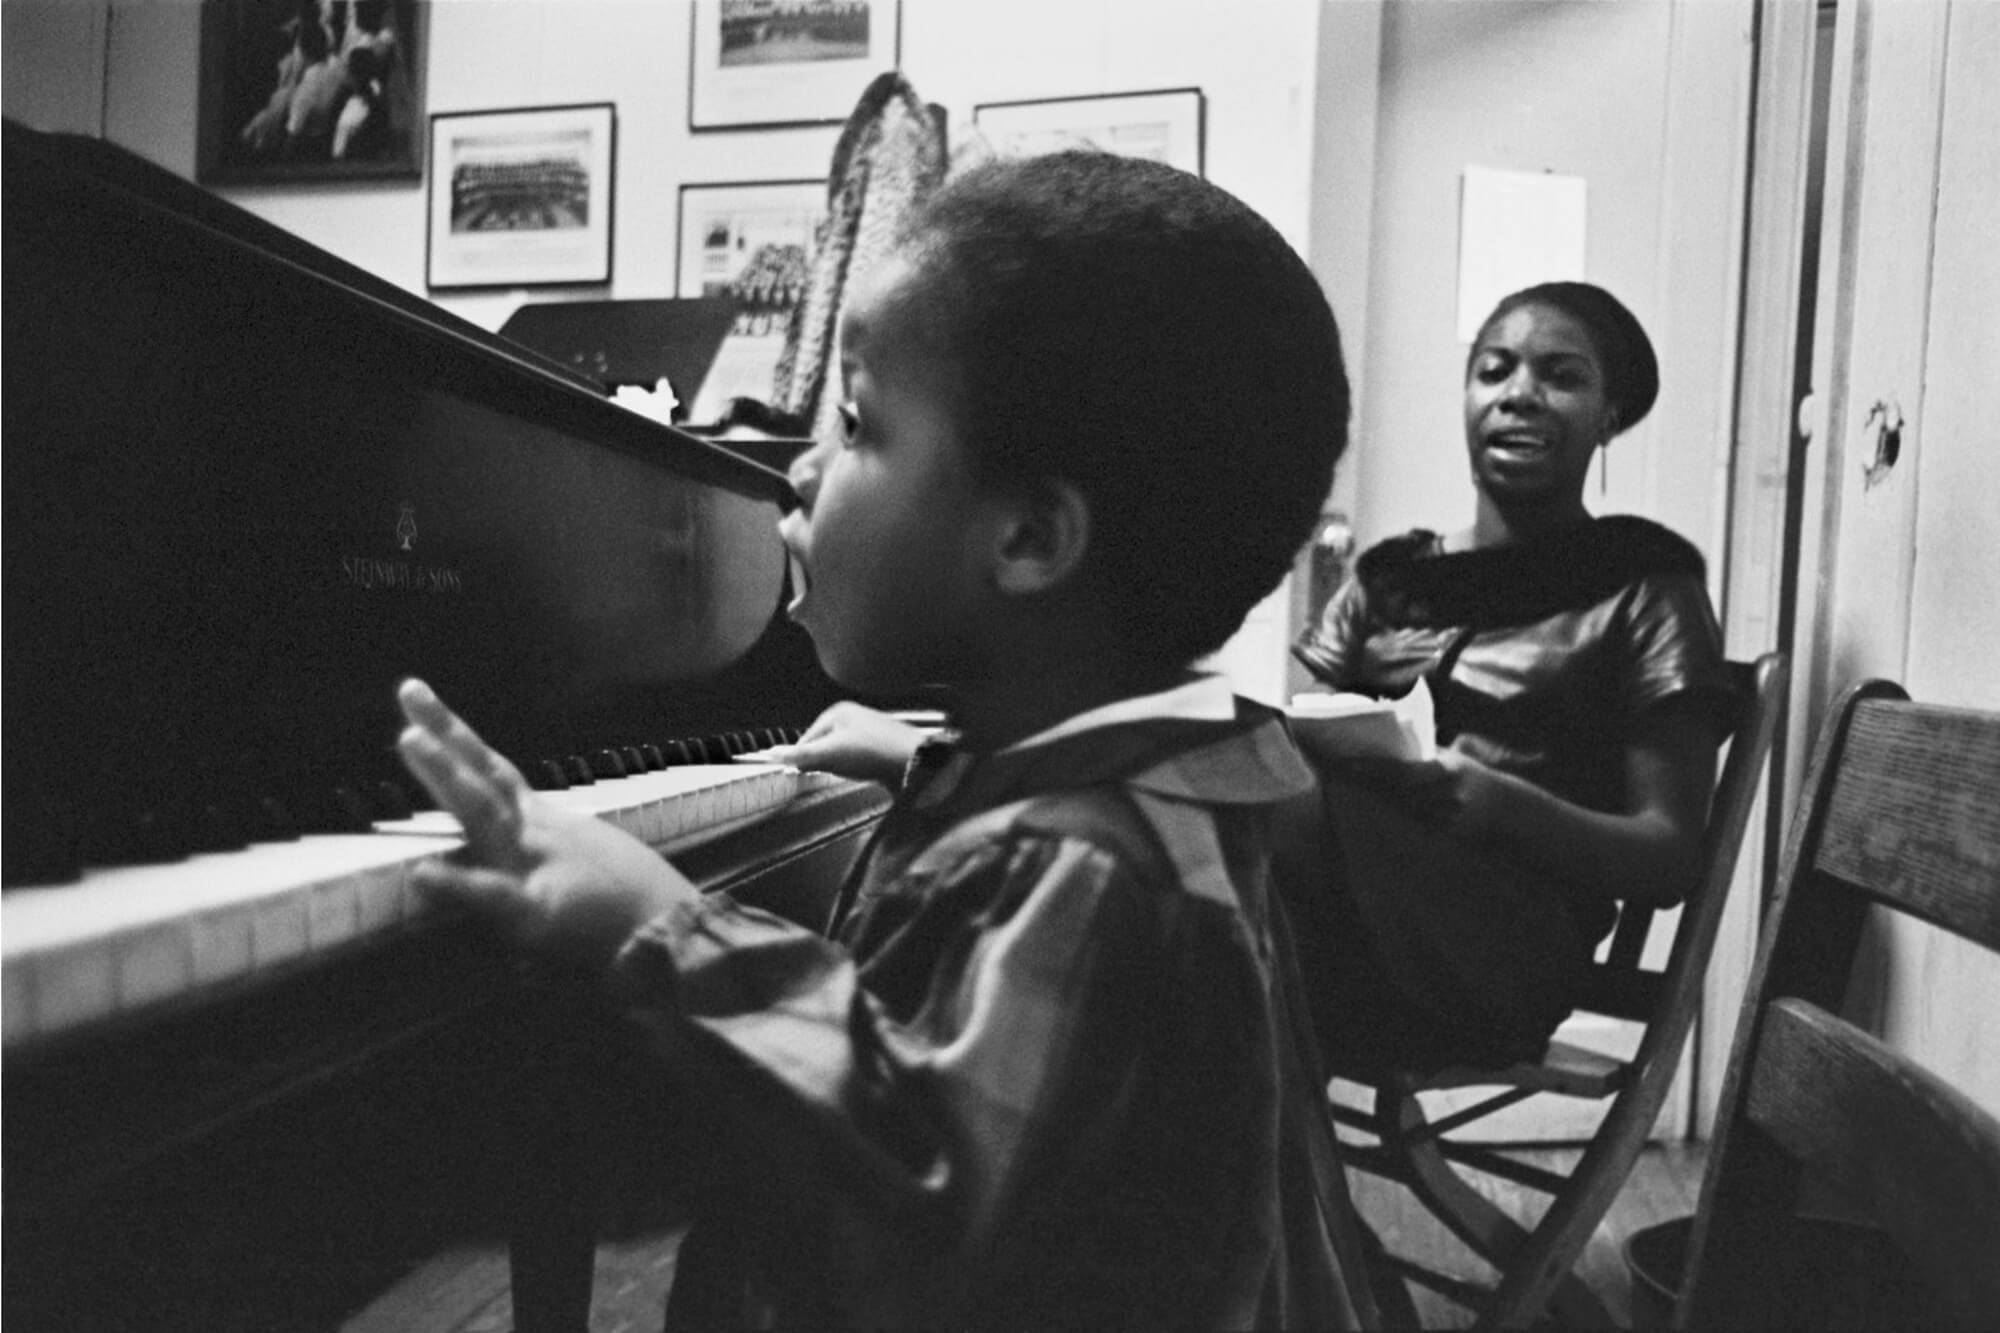 Nina Simone Teaching Her Daughter To Play Piano, 1964